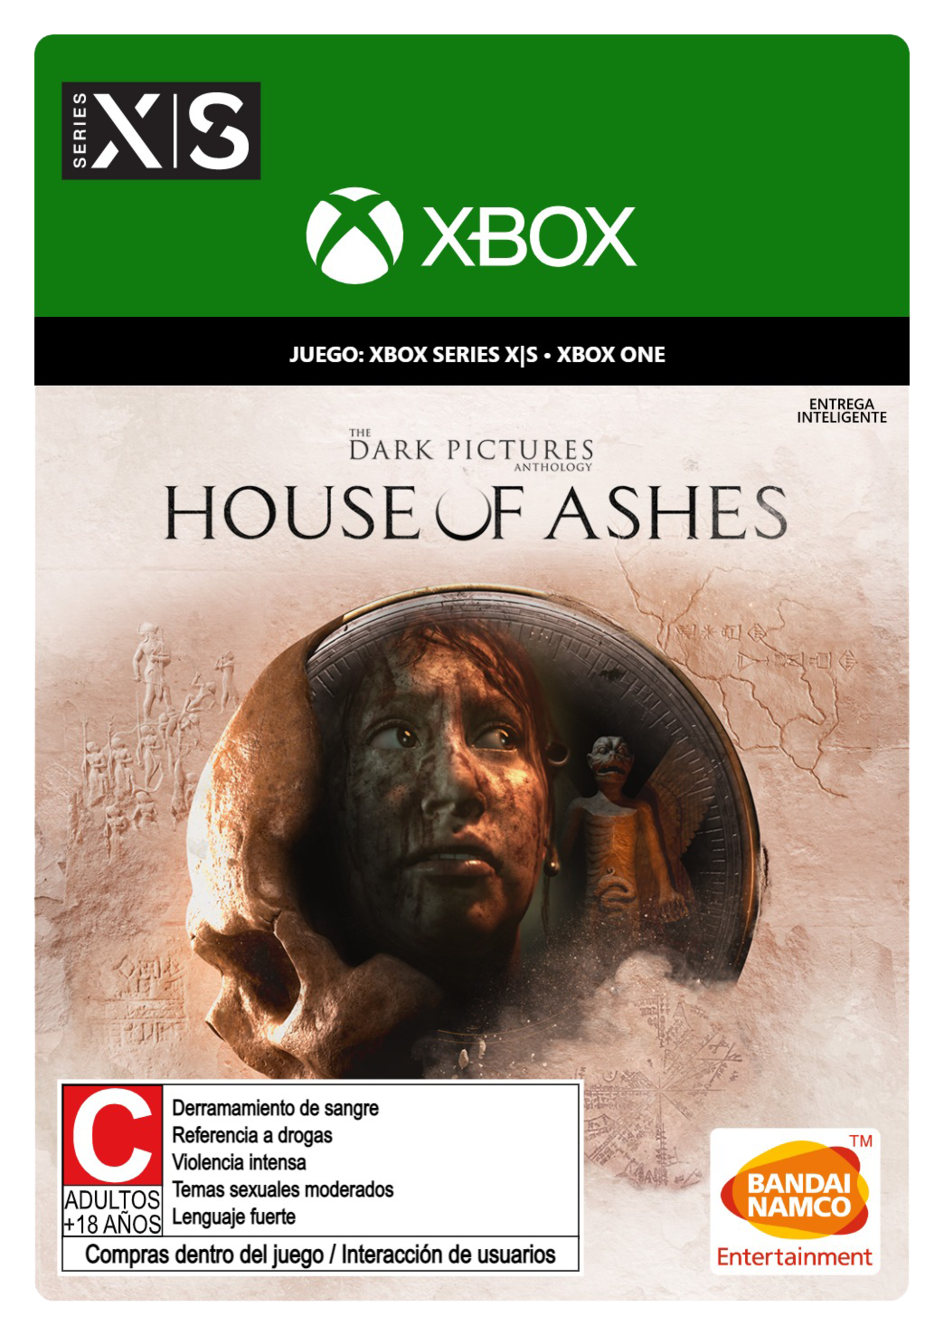 XBOX The Dark Pictures Anthology: House of Ashes - Series X / S